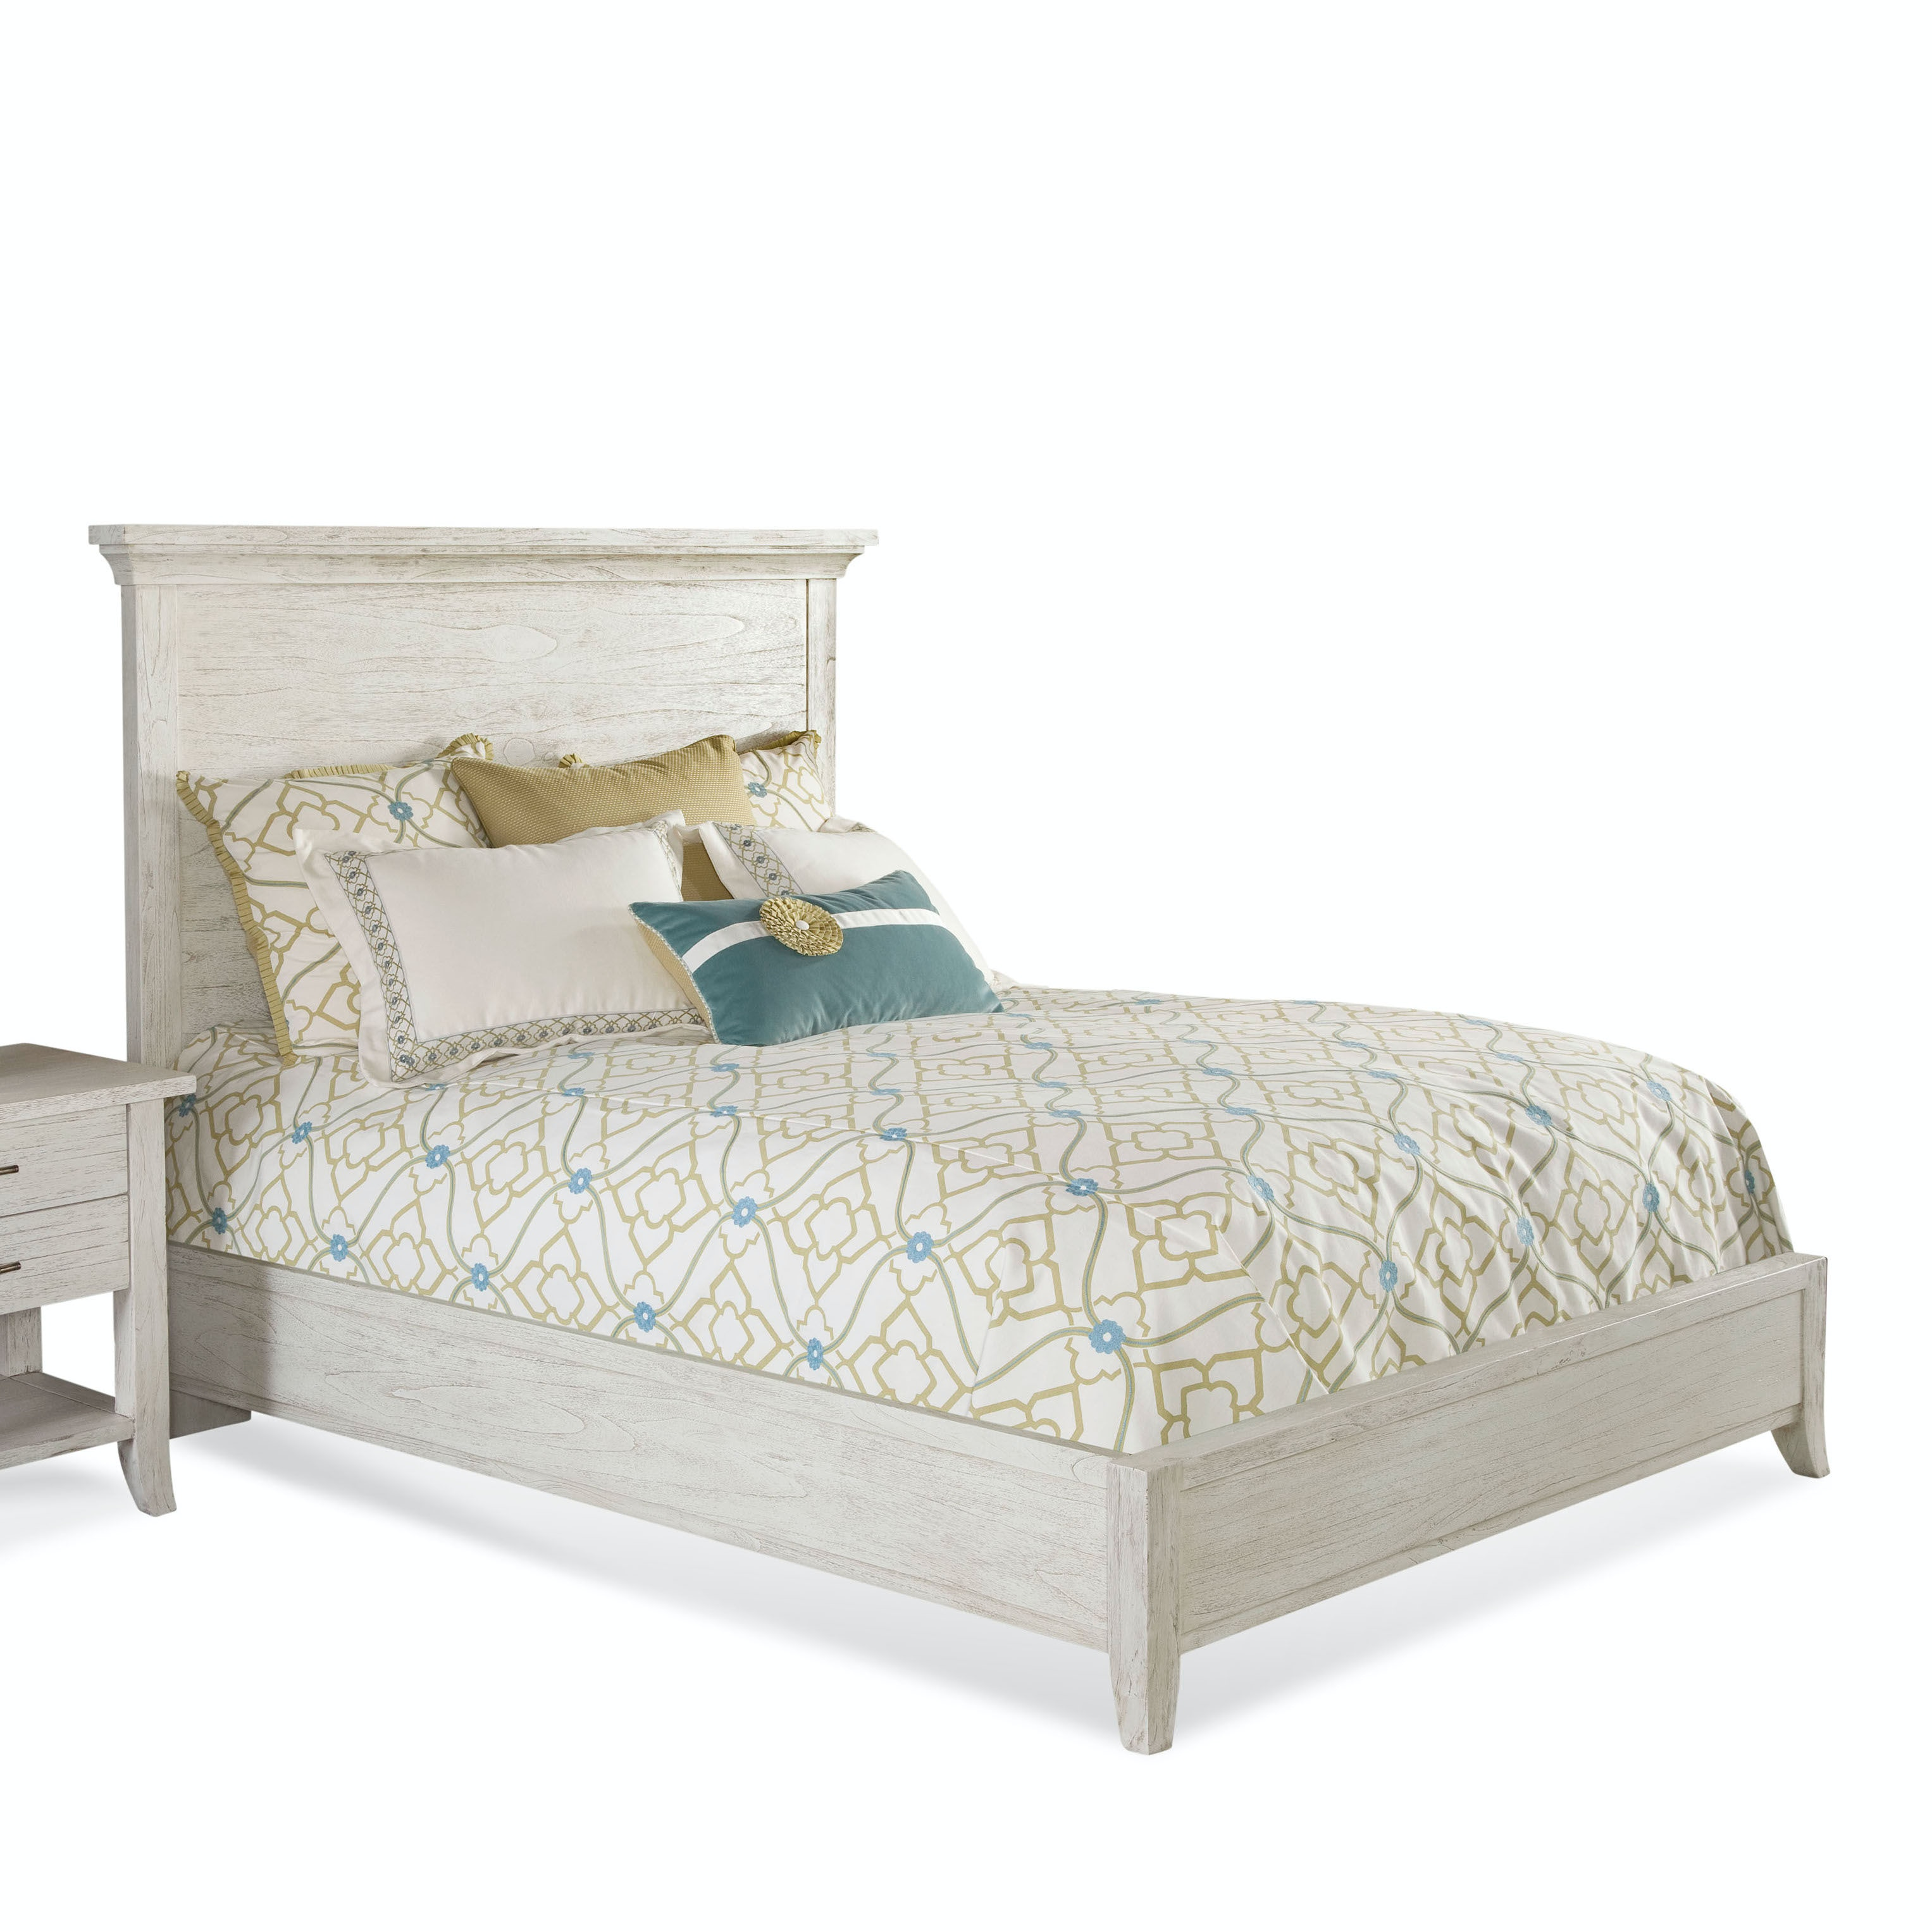 Fairwinds Panel Bed 2932-PANEL-BED